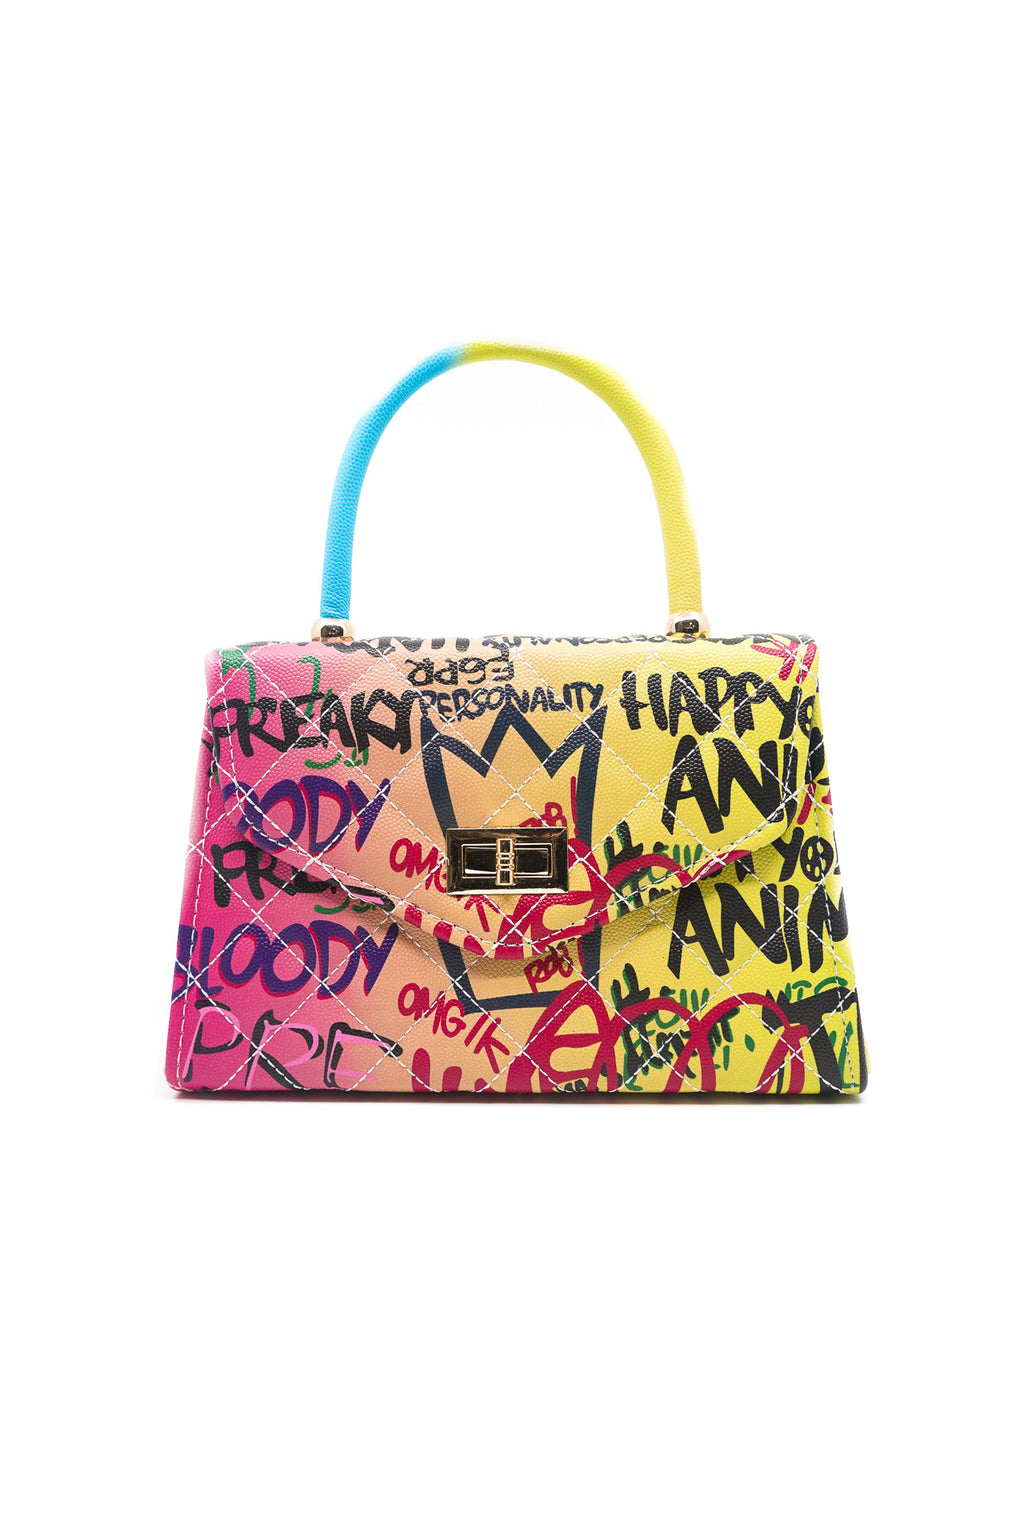 Gradient Graffiti Marker Lettering Handbag in Pink and Yellow - Fashion House USA